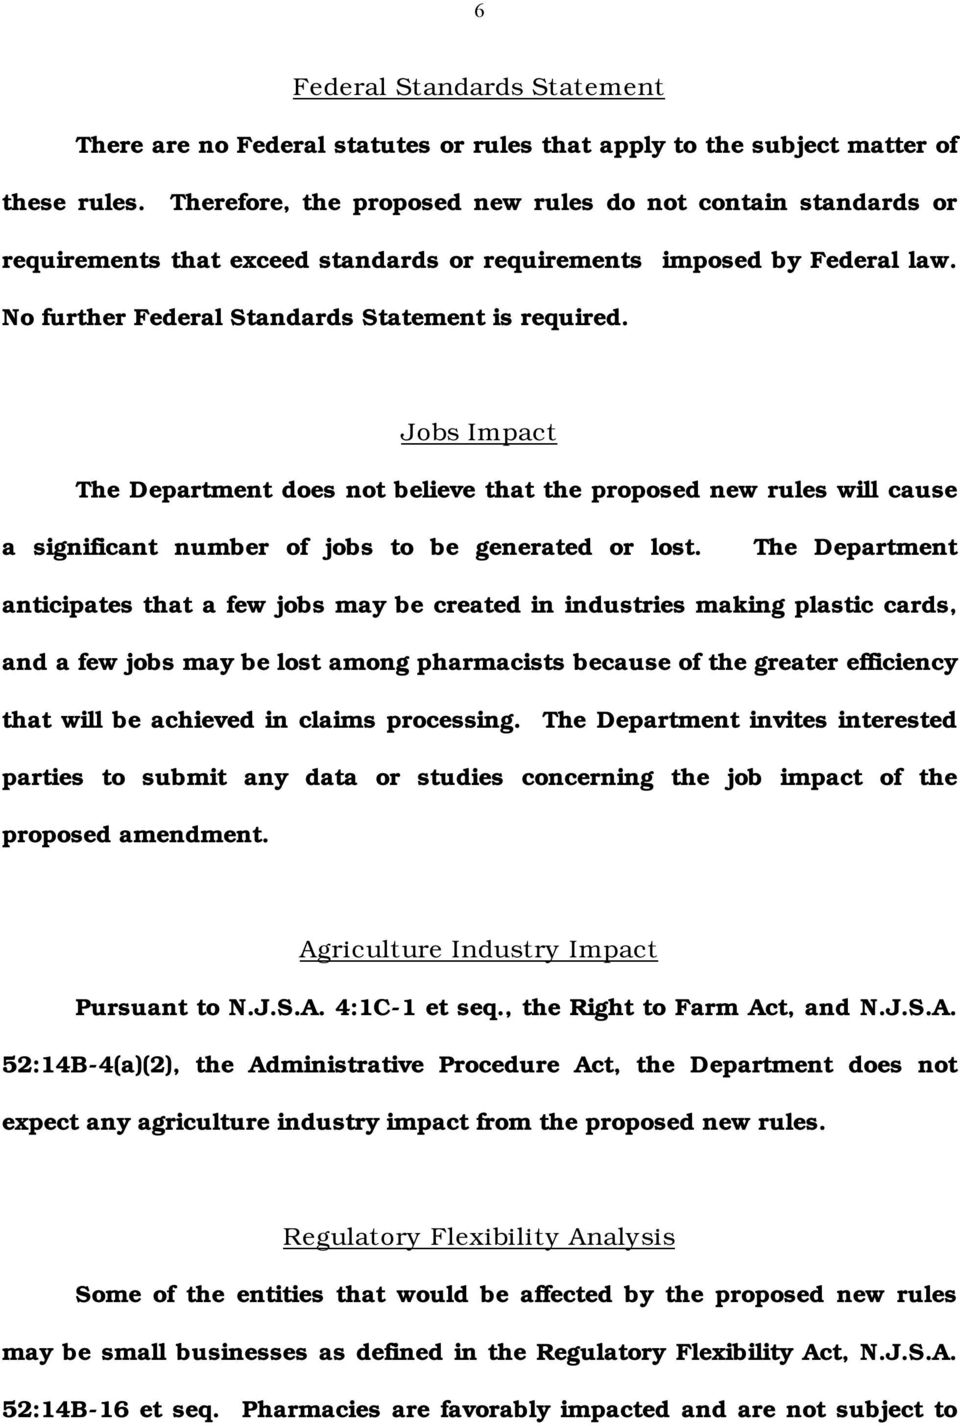 Jobs Impact The Department does not believe that the proposed new rules will cause a significant number of jobs to be generated or lost.